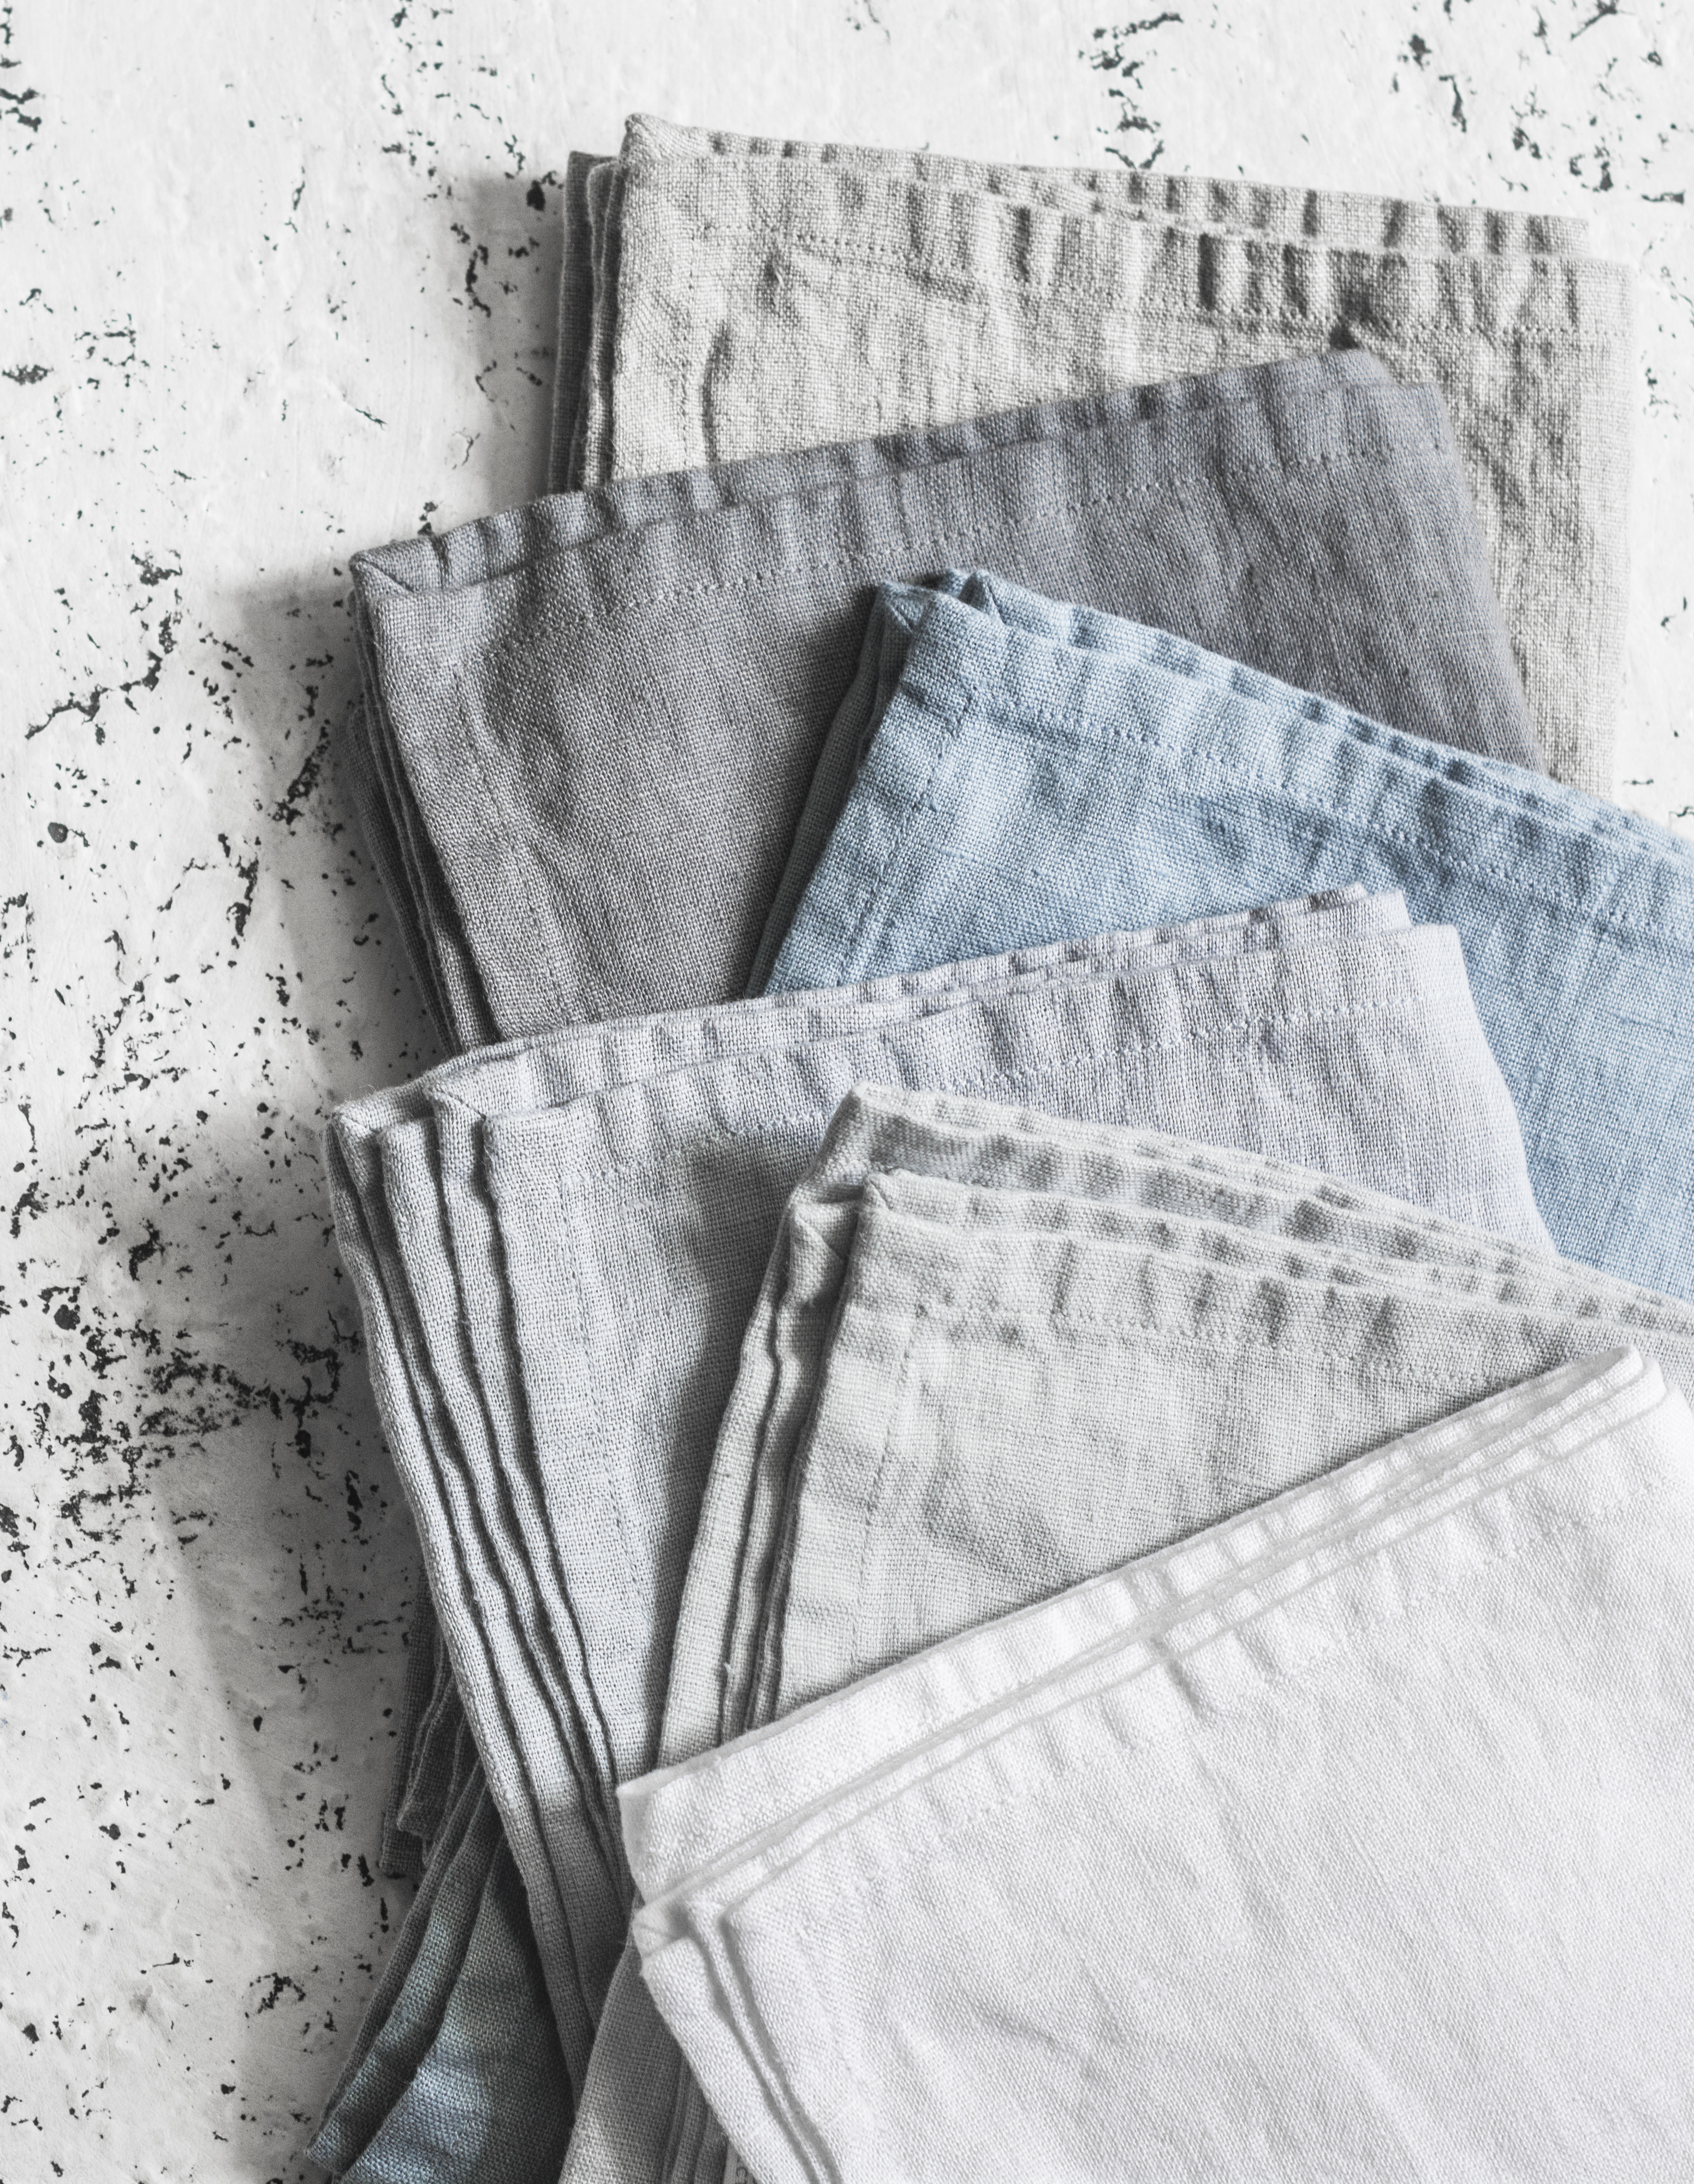 Rustic linen kitchen napkins on a light background. Pastel shades